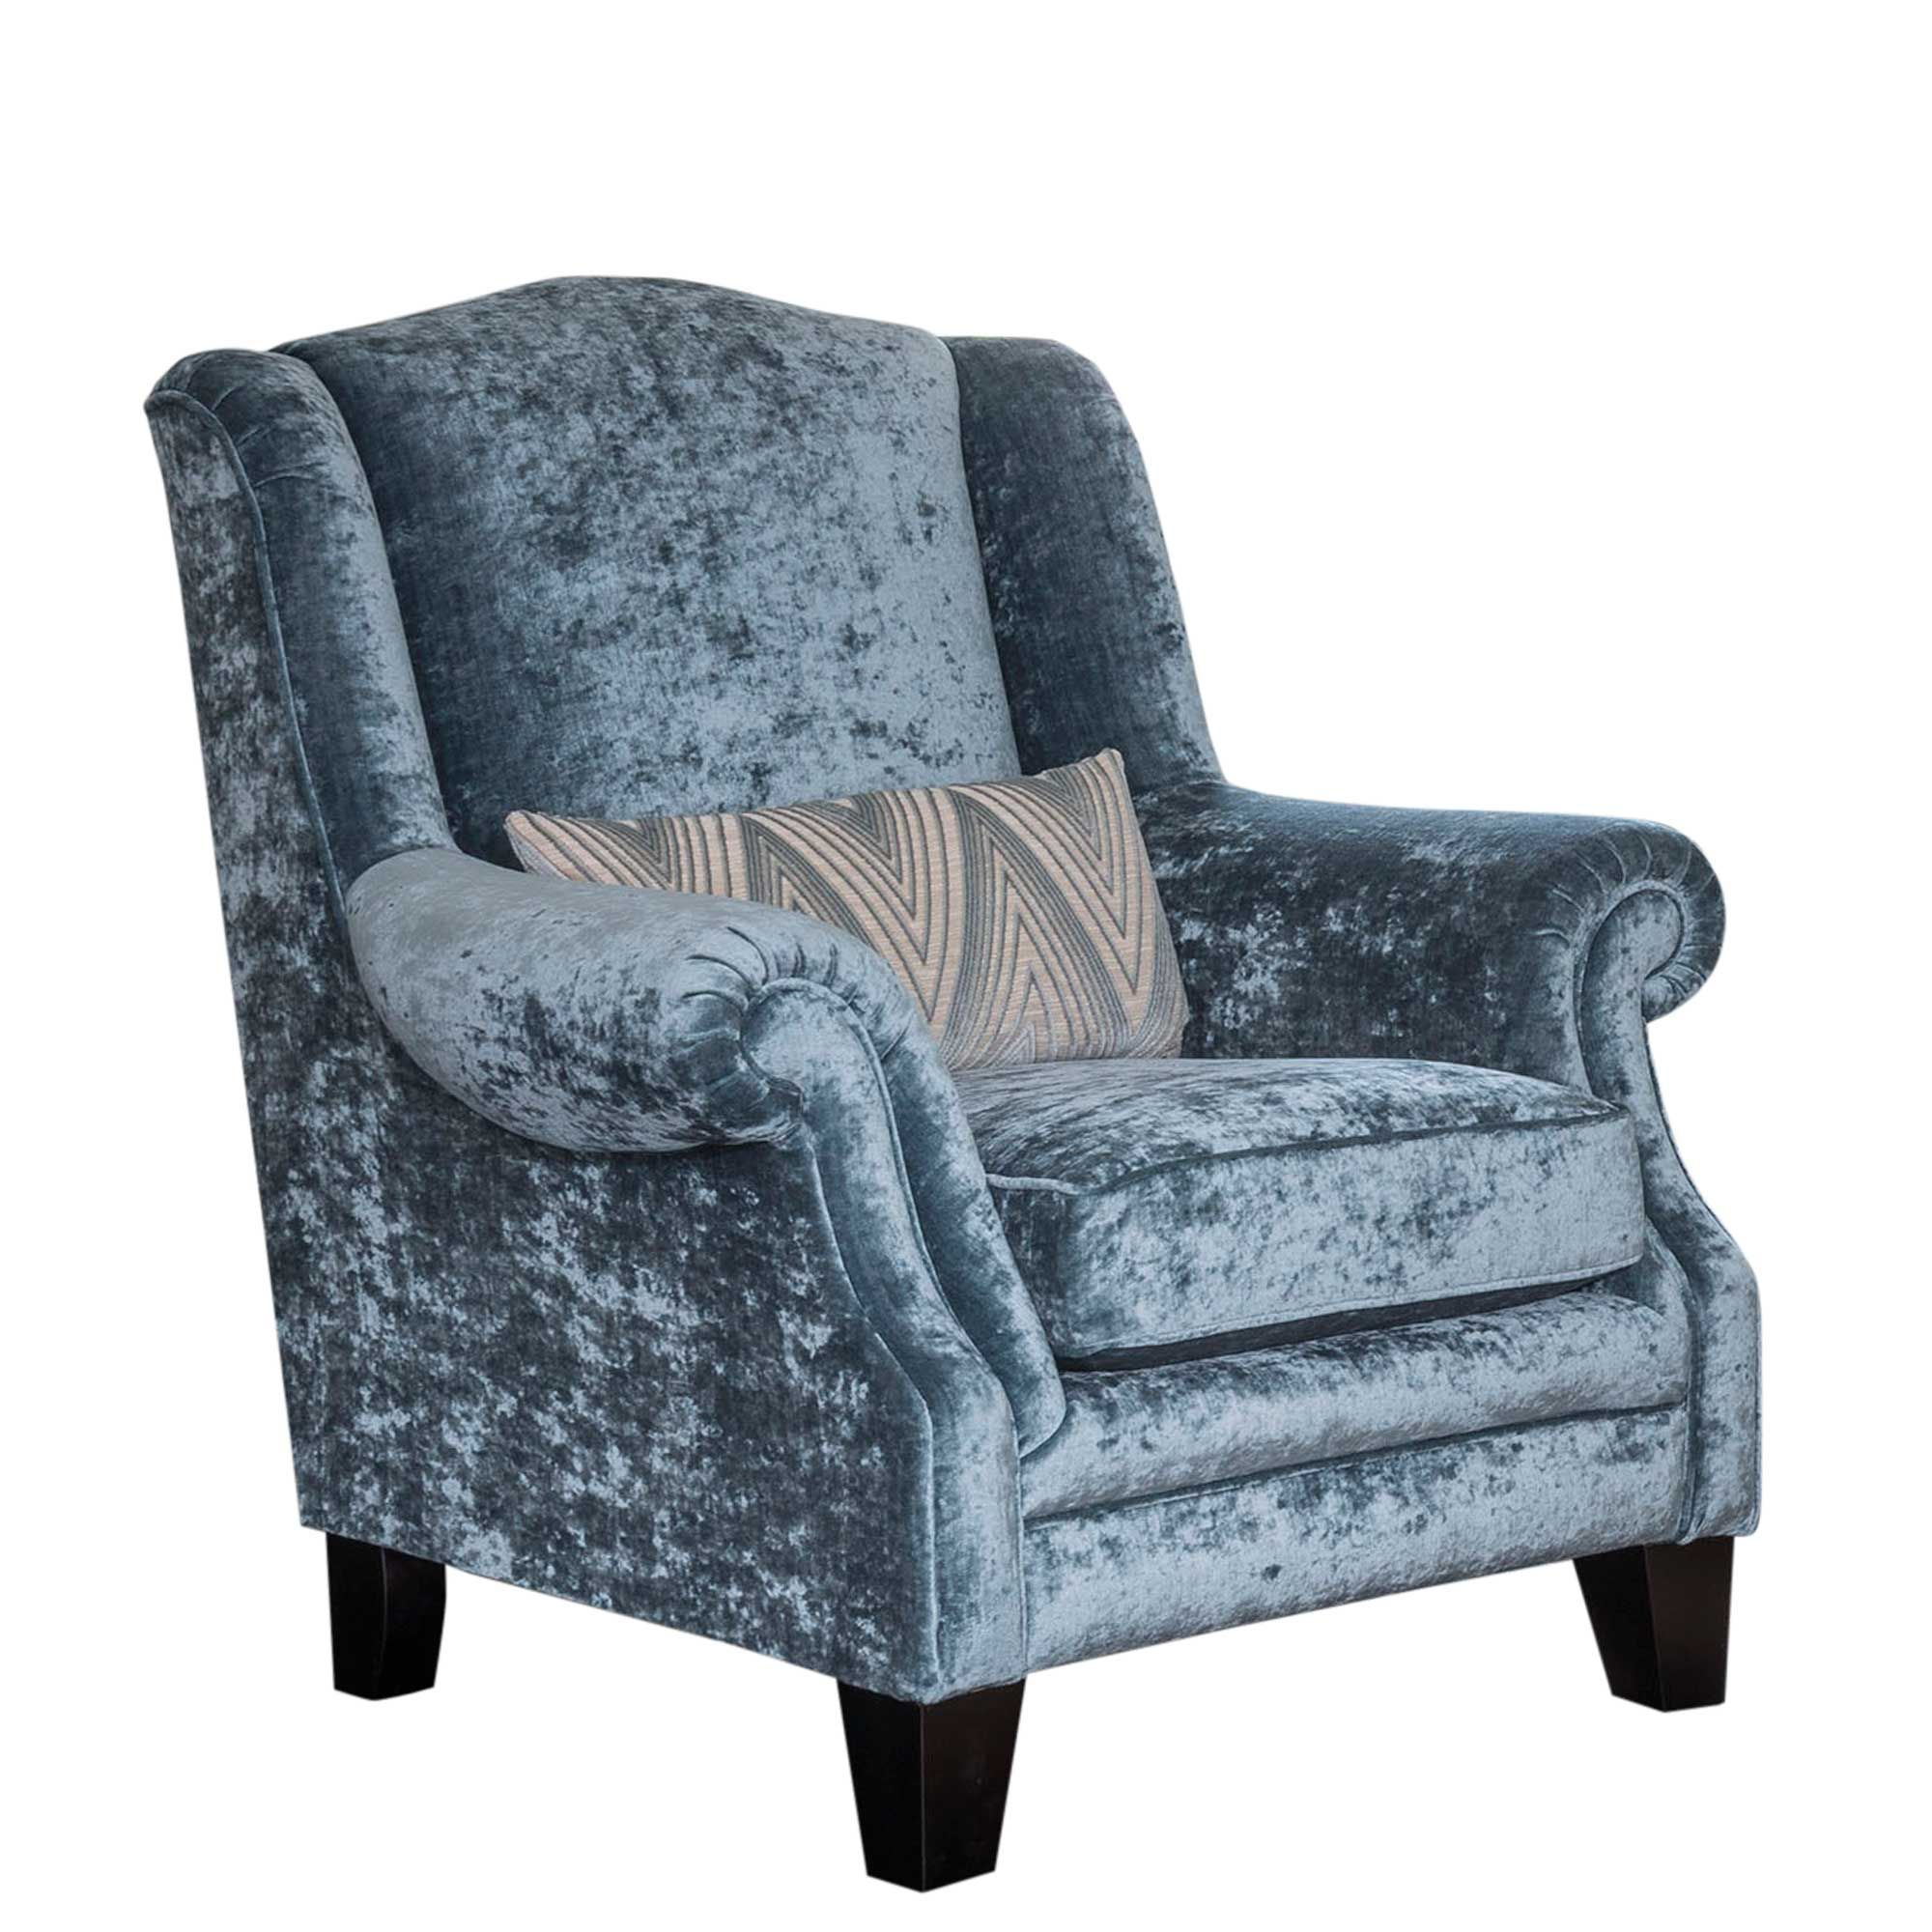 The Lassington wing chair is a great way to inject additional personality to your living space with a bold colour and also helps tie your colour scheme together.